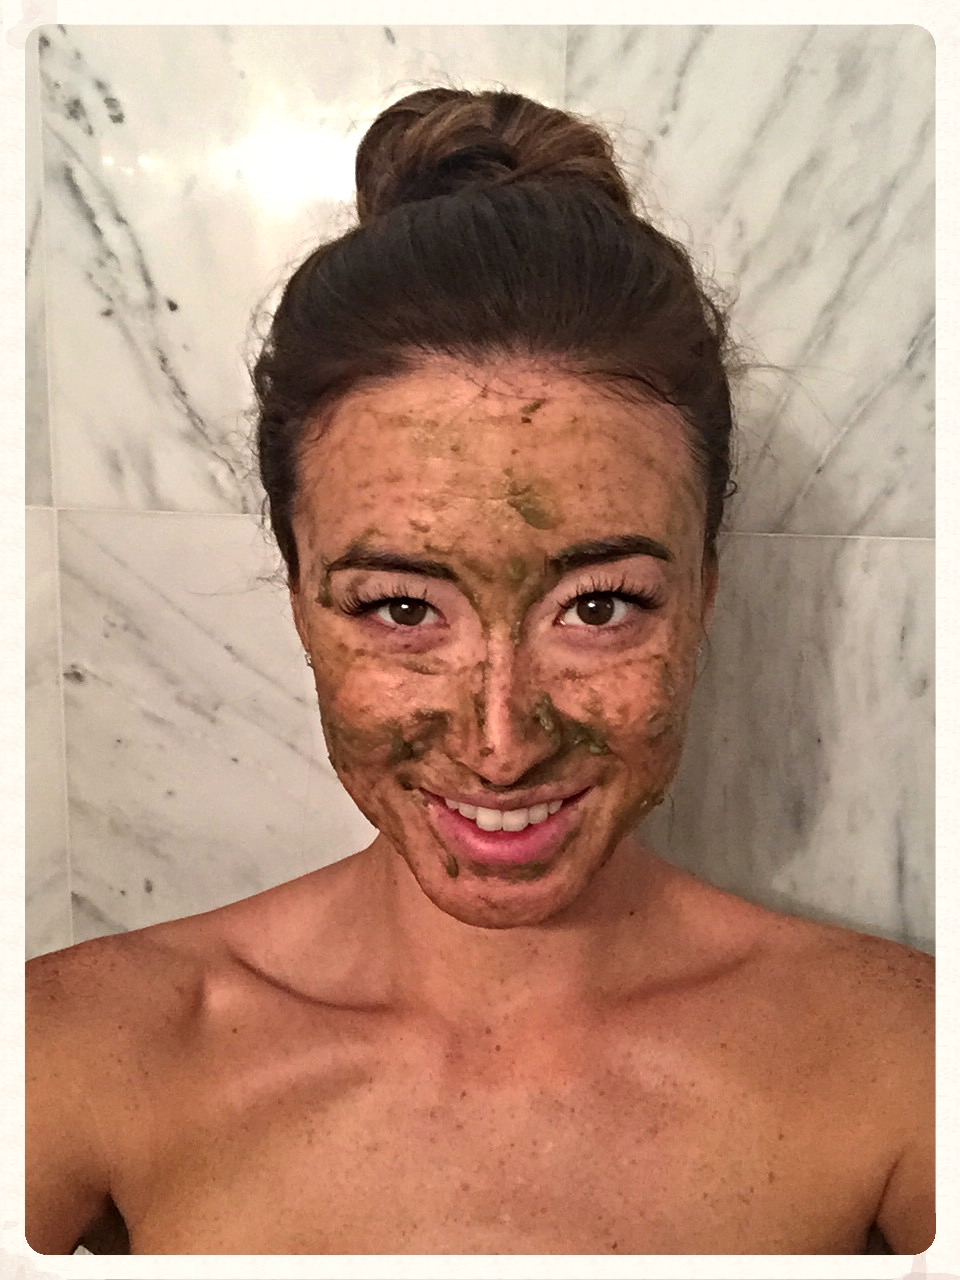 Sexy right? I promise, your skin will thank you...